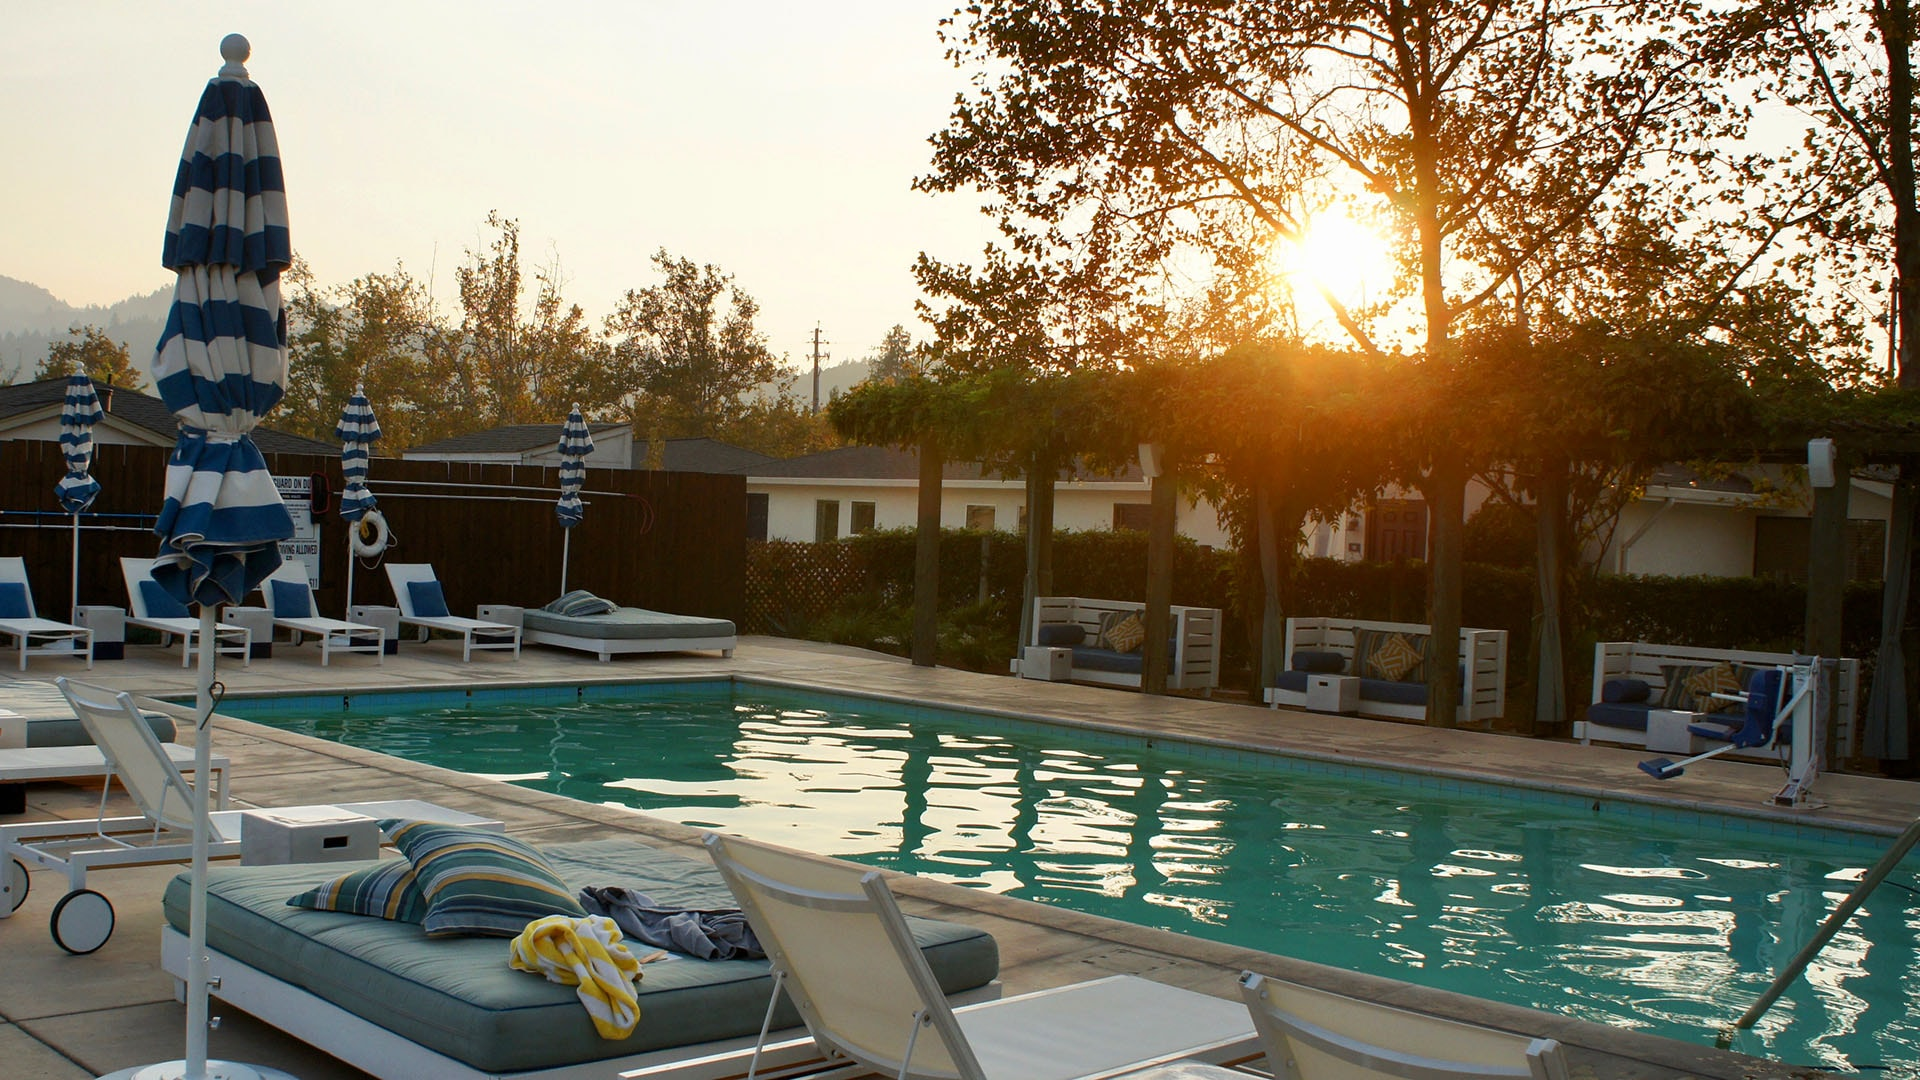 Calistoga Motor Lodge boasts three mineral springs pools and a large pool deck for relaxing.